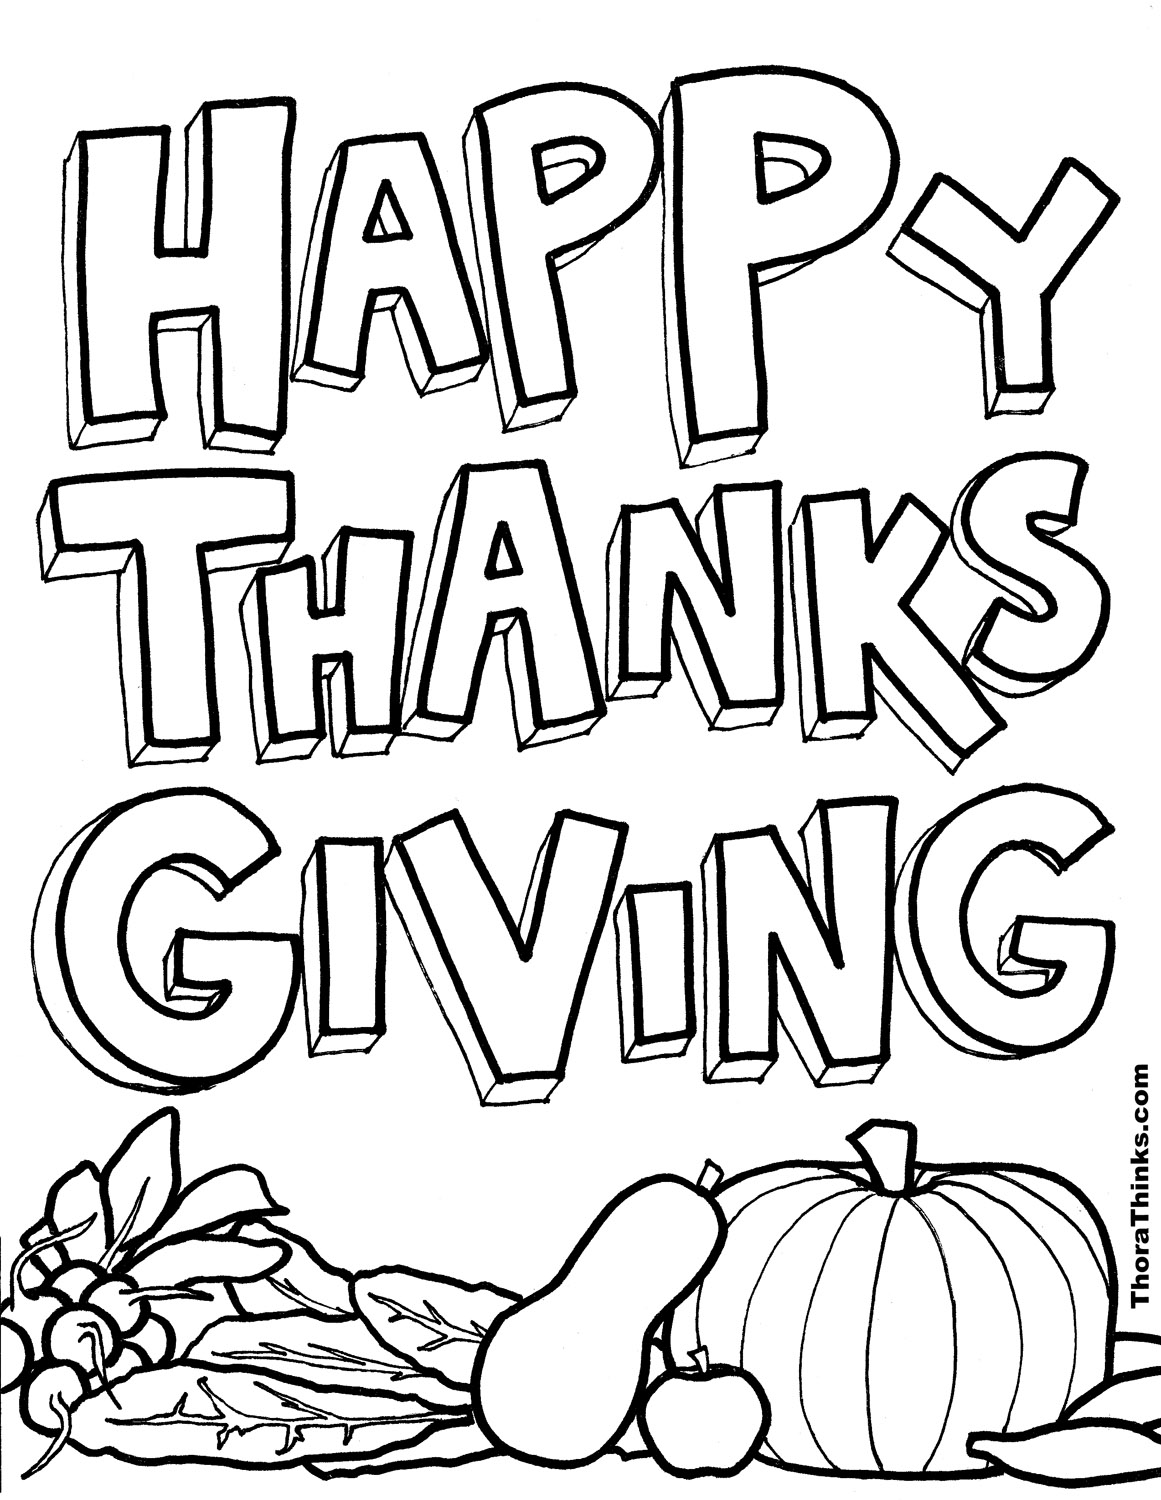 free coloring pages for adults thanksgiving : Thanksgiving Color Printouts 58 Download Image Thanksgiving Color Printouts Coloring Pages Thanksgiving Turkey Free Image